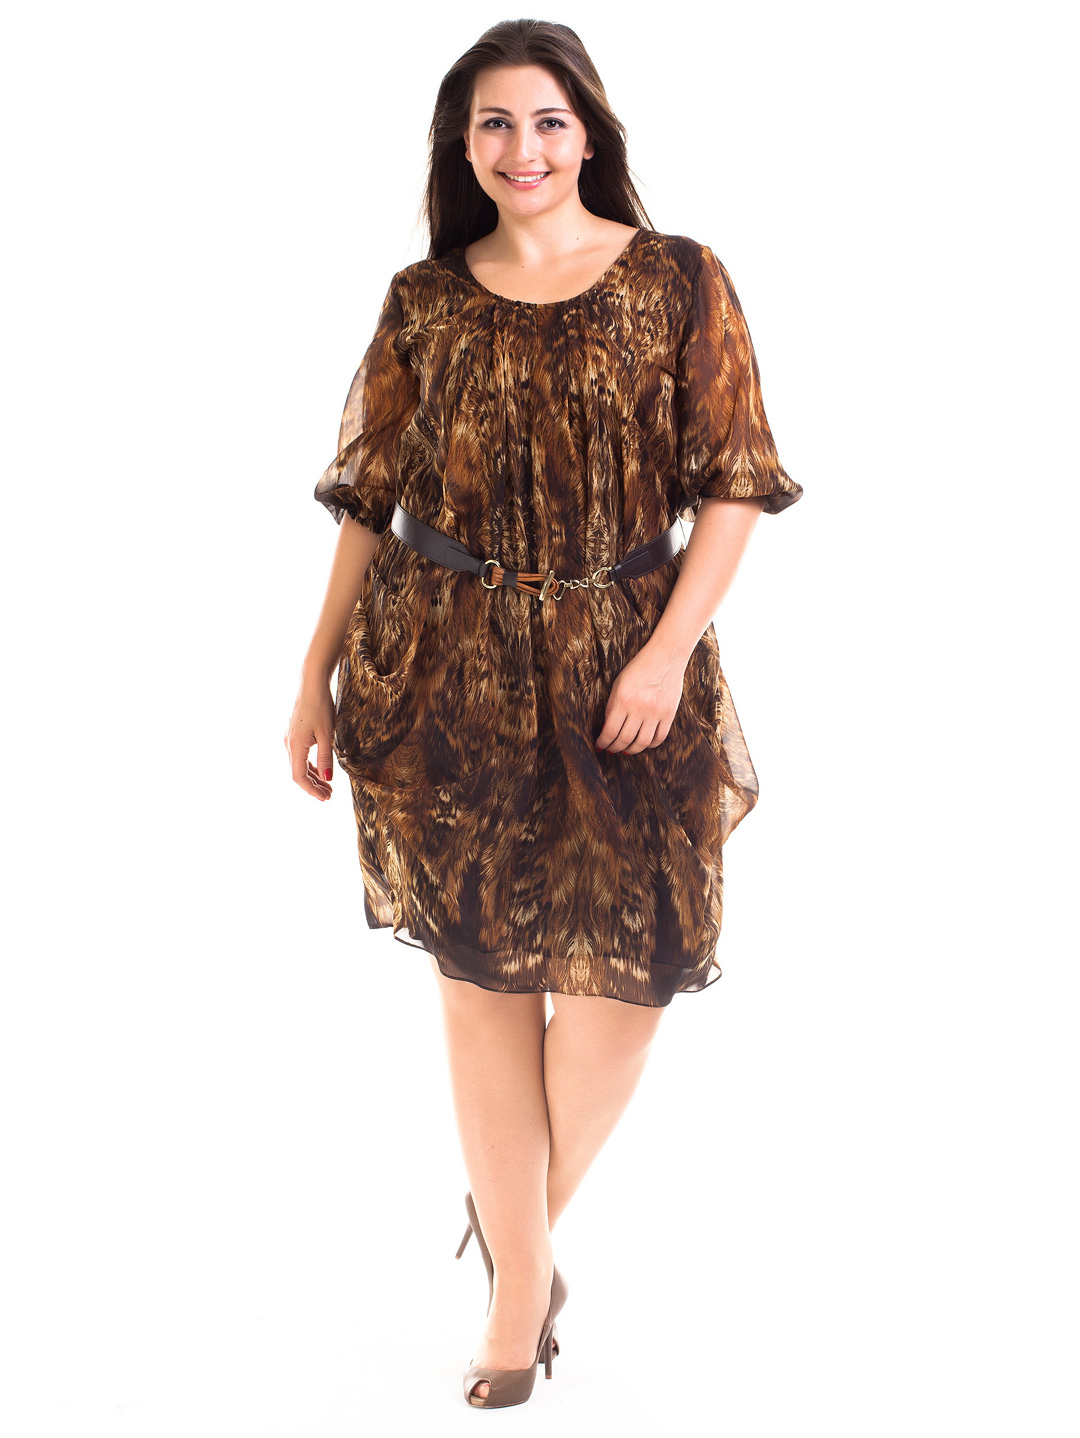 Discover the whole range of Simply Be's plus size dresses from plus size maxi and shift to work and formal. No matter whether you're looking for seasonal sun or party dresses, something to shake up a formal event and special occasion or a classic, all year round maxi dress, we got something for you.